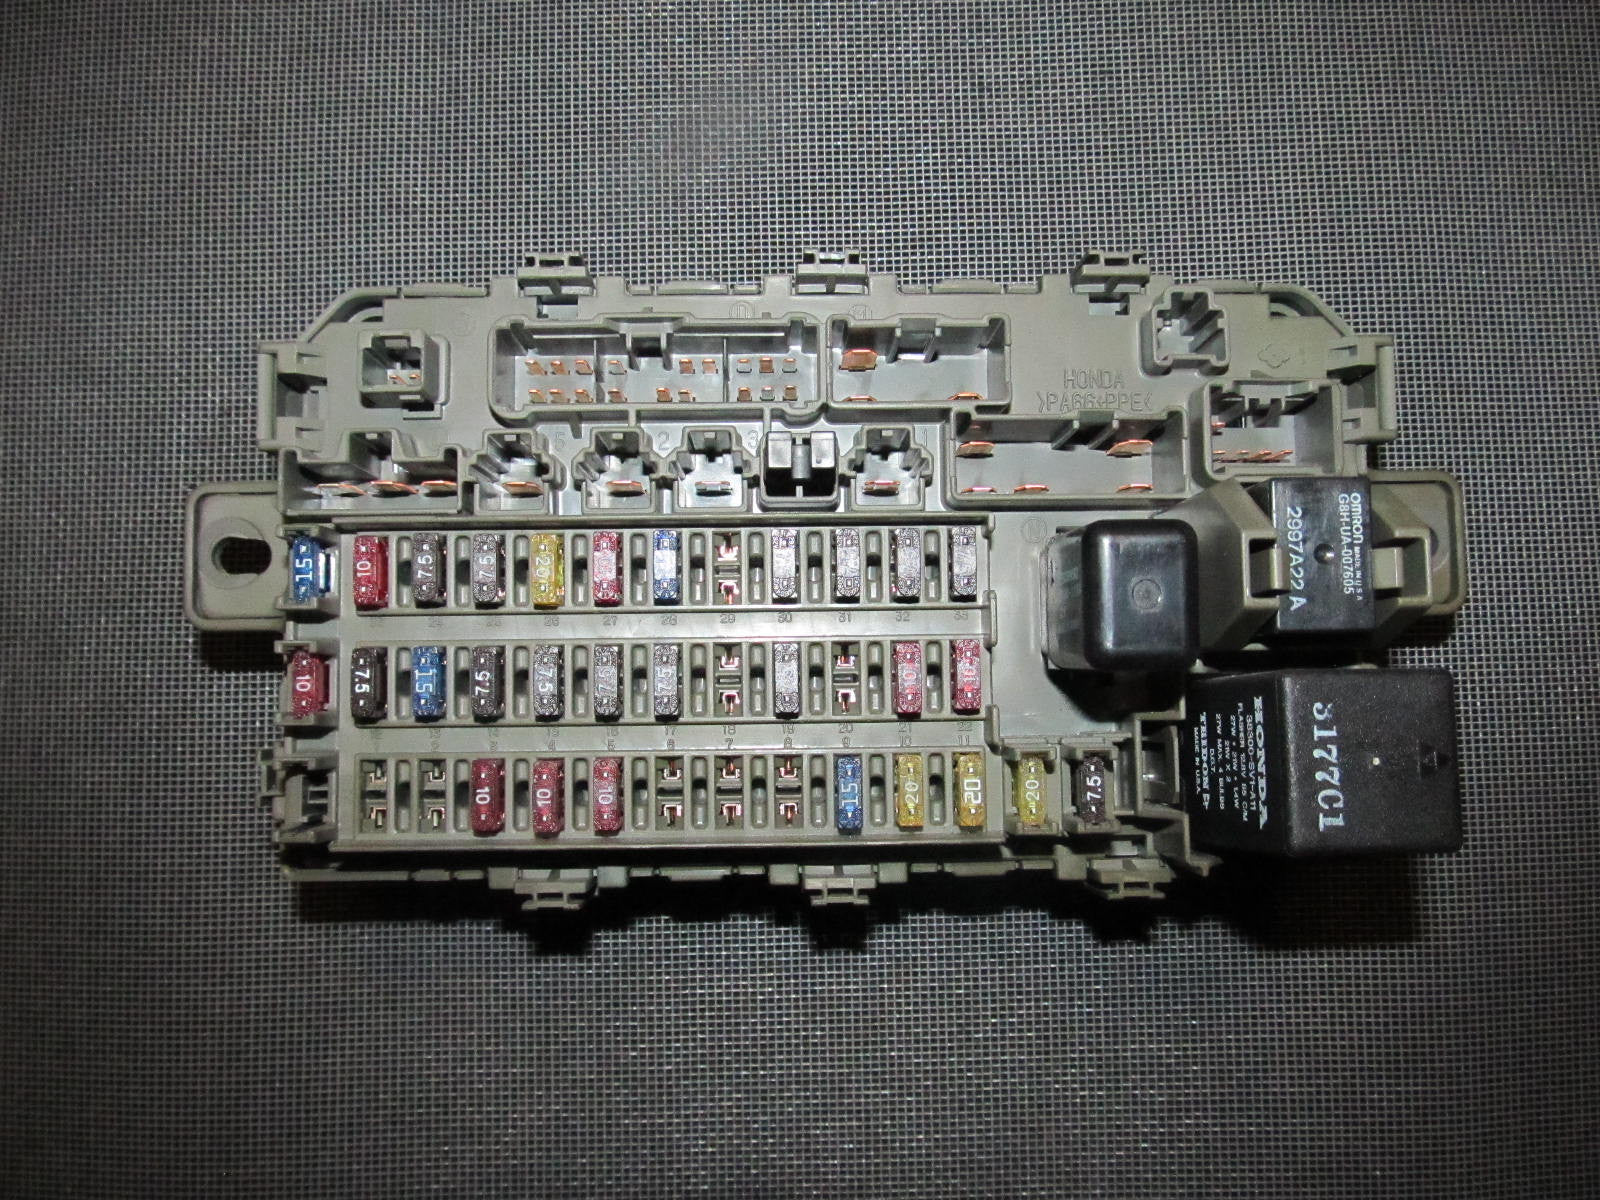 IMG_9687_e40c3657 cee5 4226 9211 04a229811583?v=1405129915 96 97 98 99 00 honda civic oem interior fuse box with relay 96 honda civic fuse box at eliteediting.co